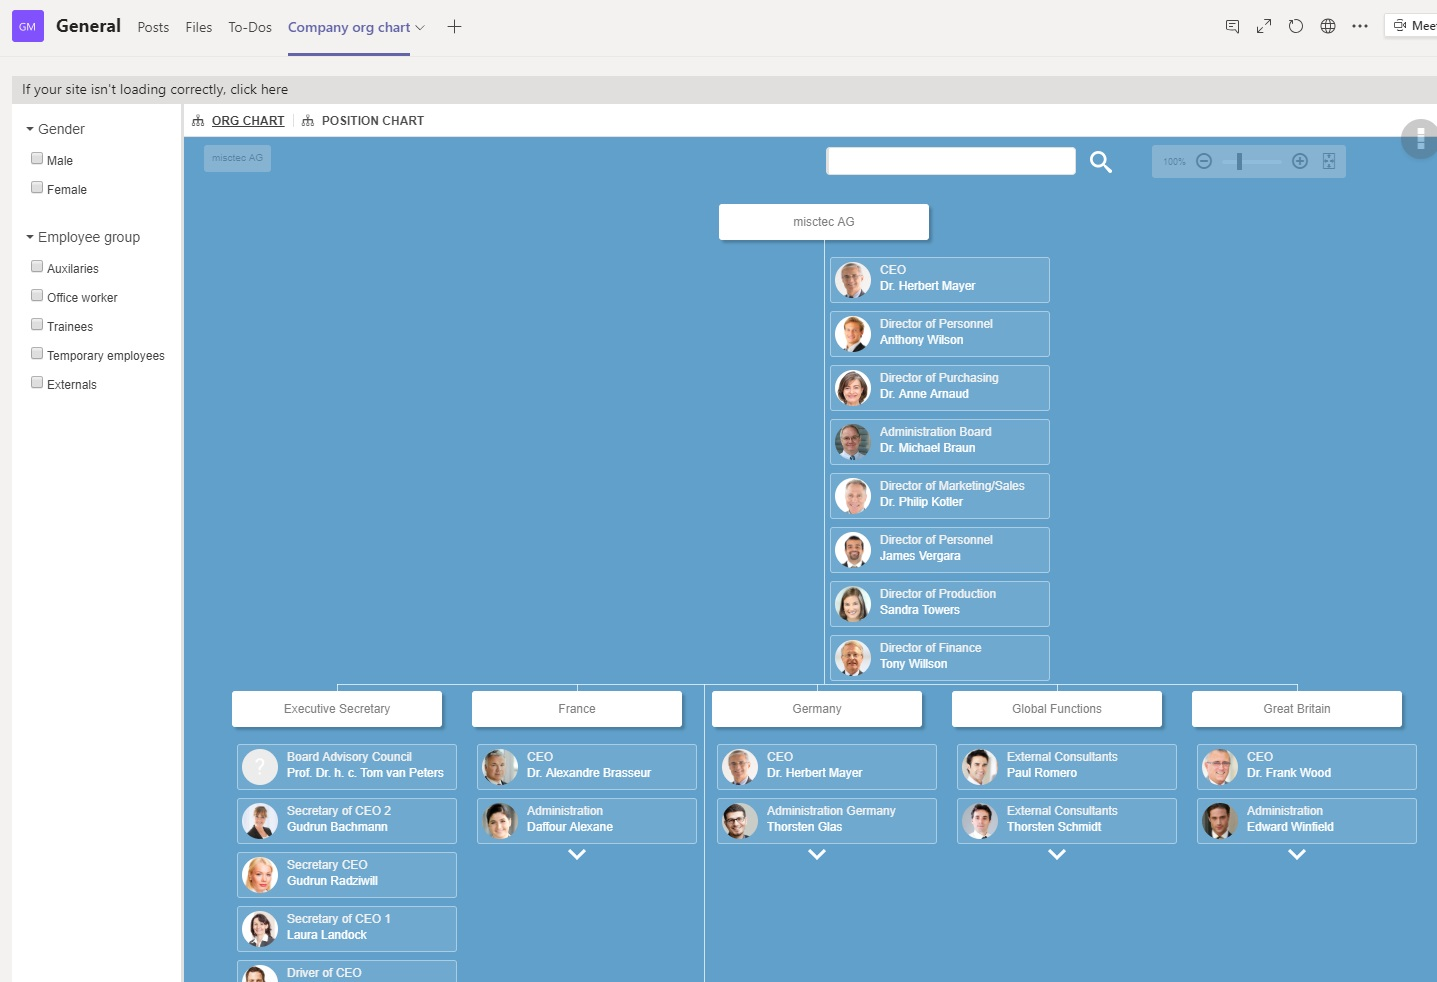 The Ingentis org.manager org chart is now part of your Microsoft Teams channel